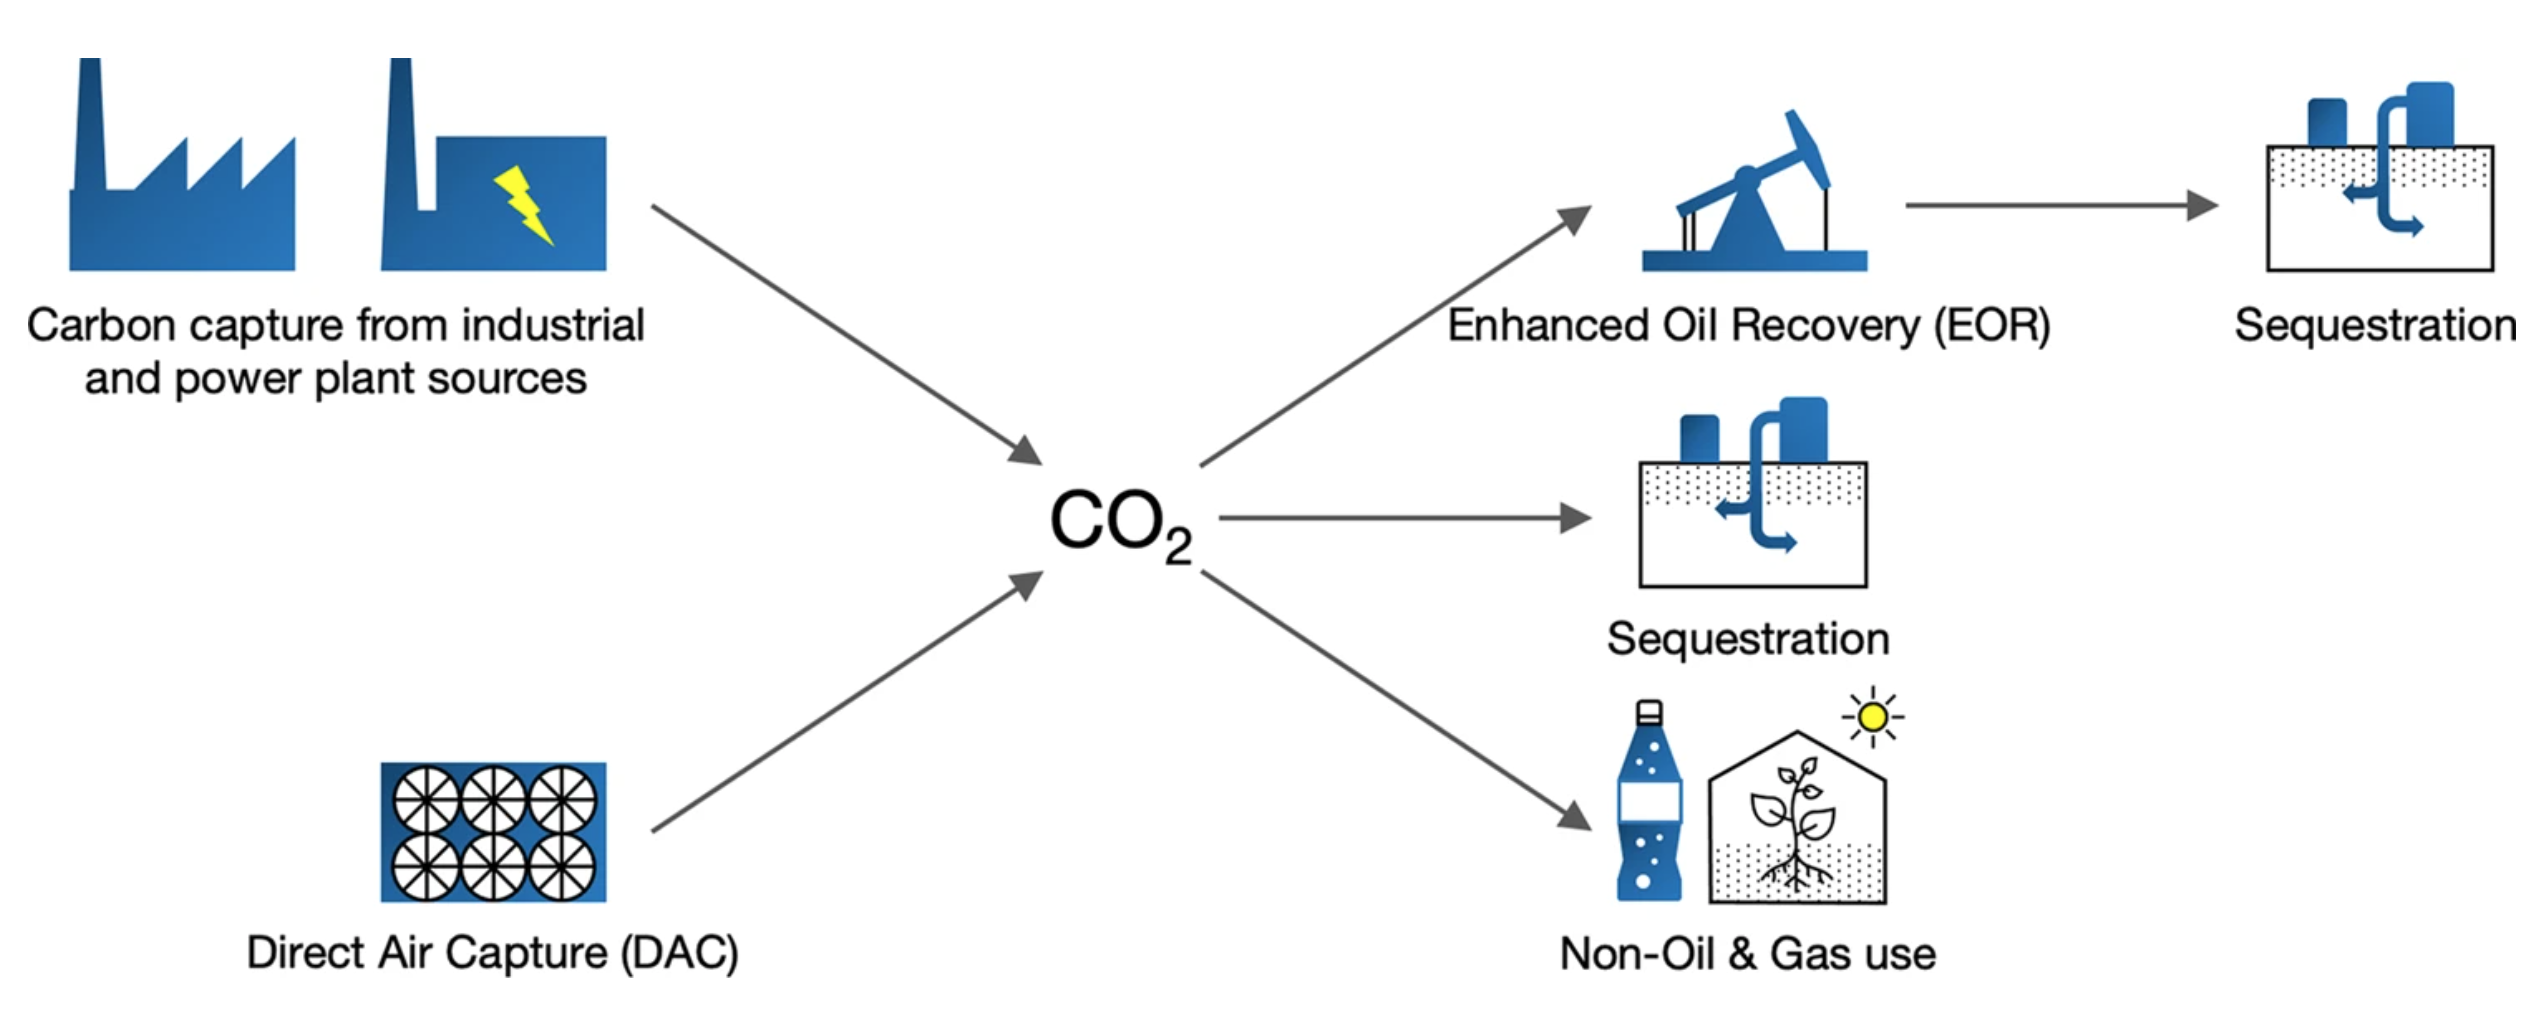 Graphic showing two main options for technological capture of CO2